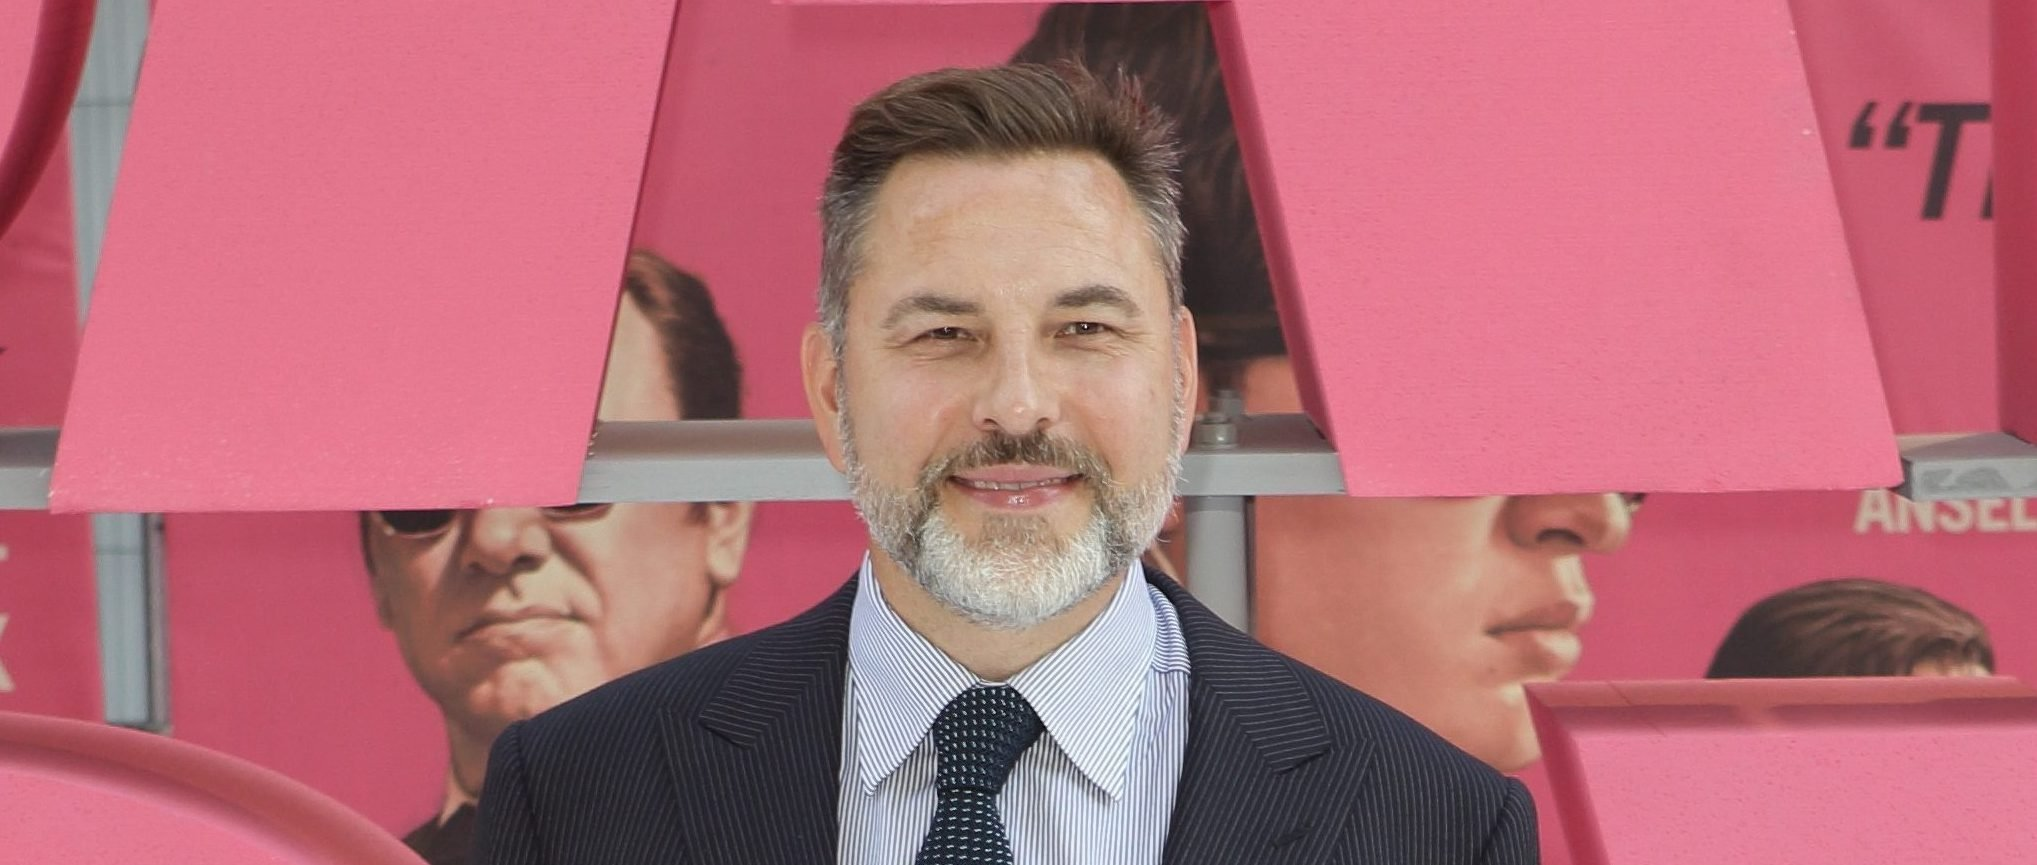 "David Walliams branded ""racist"" for his Halloween costume"